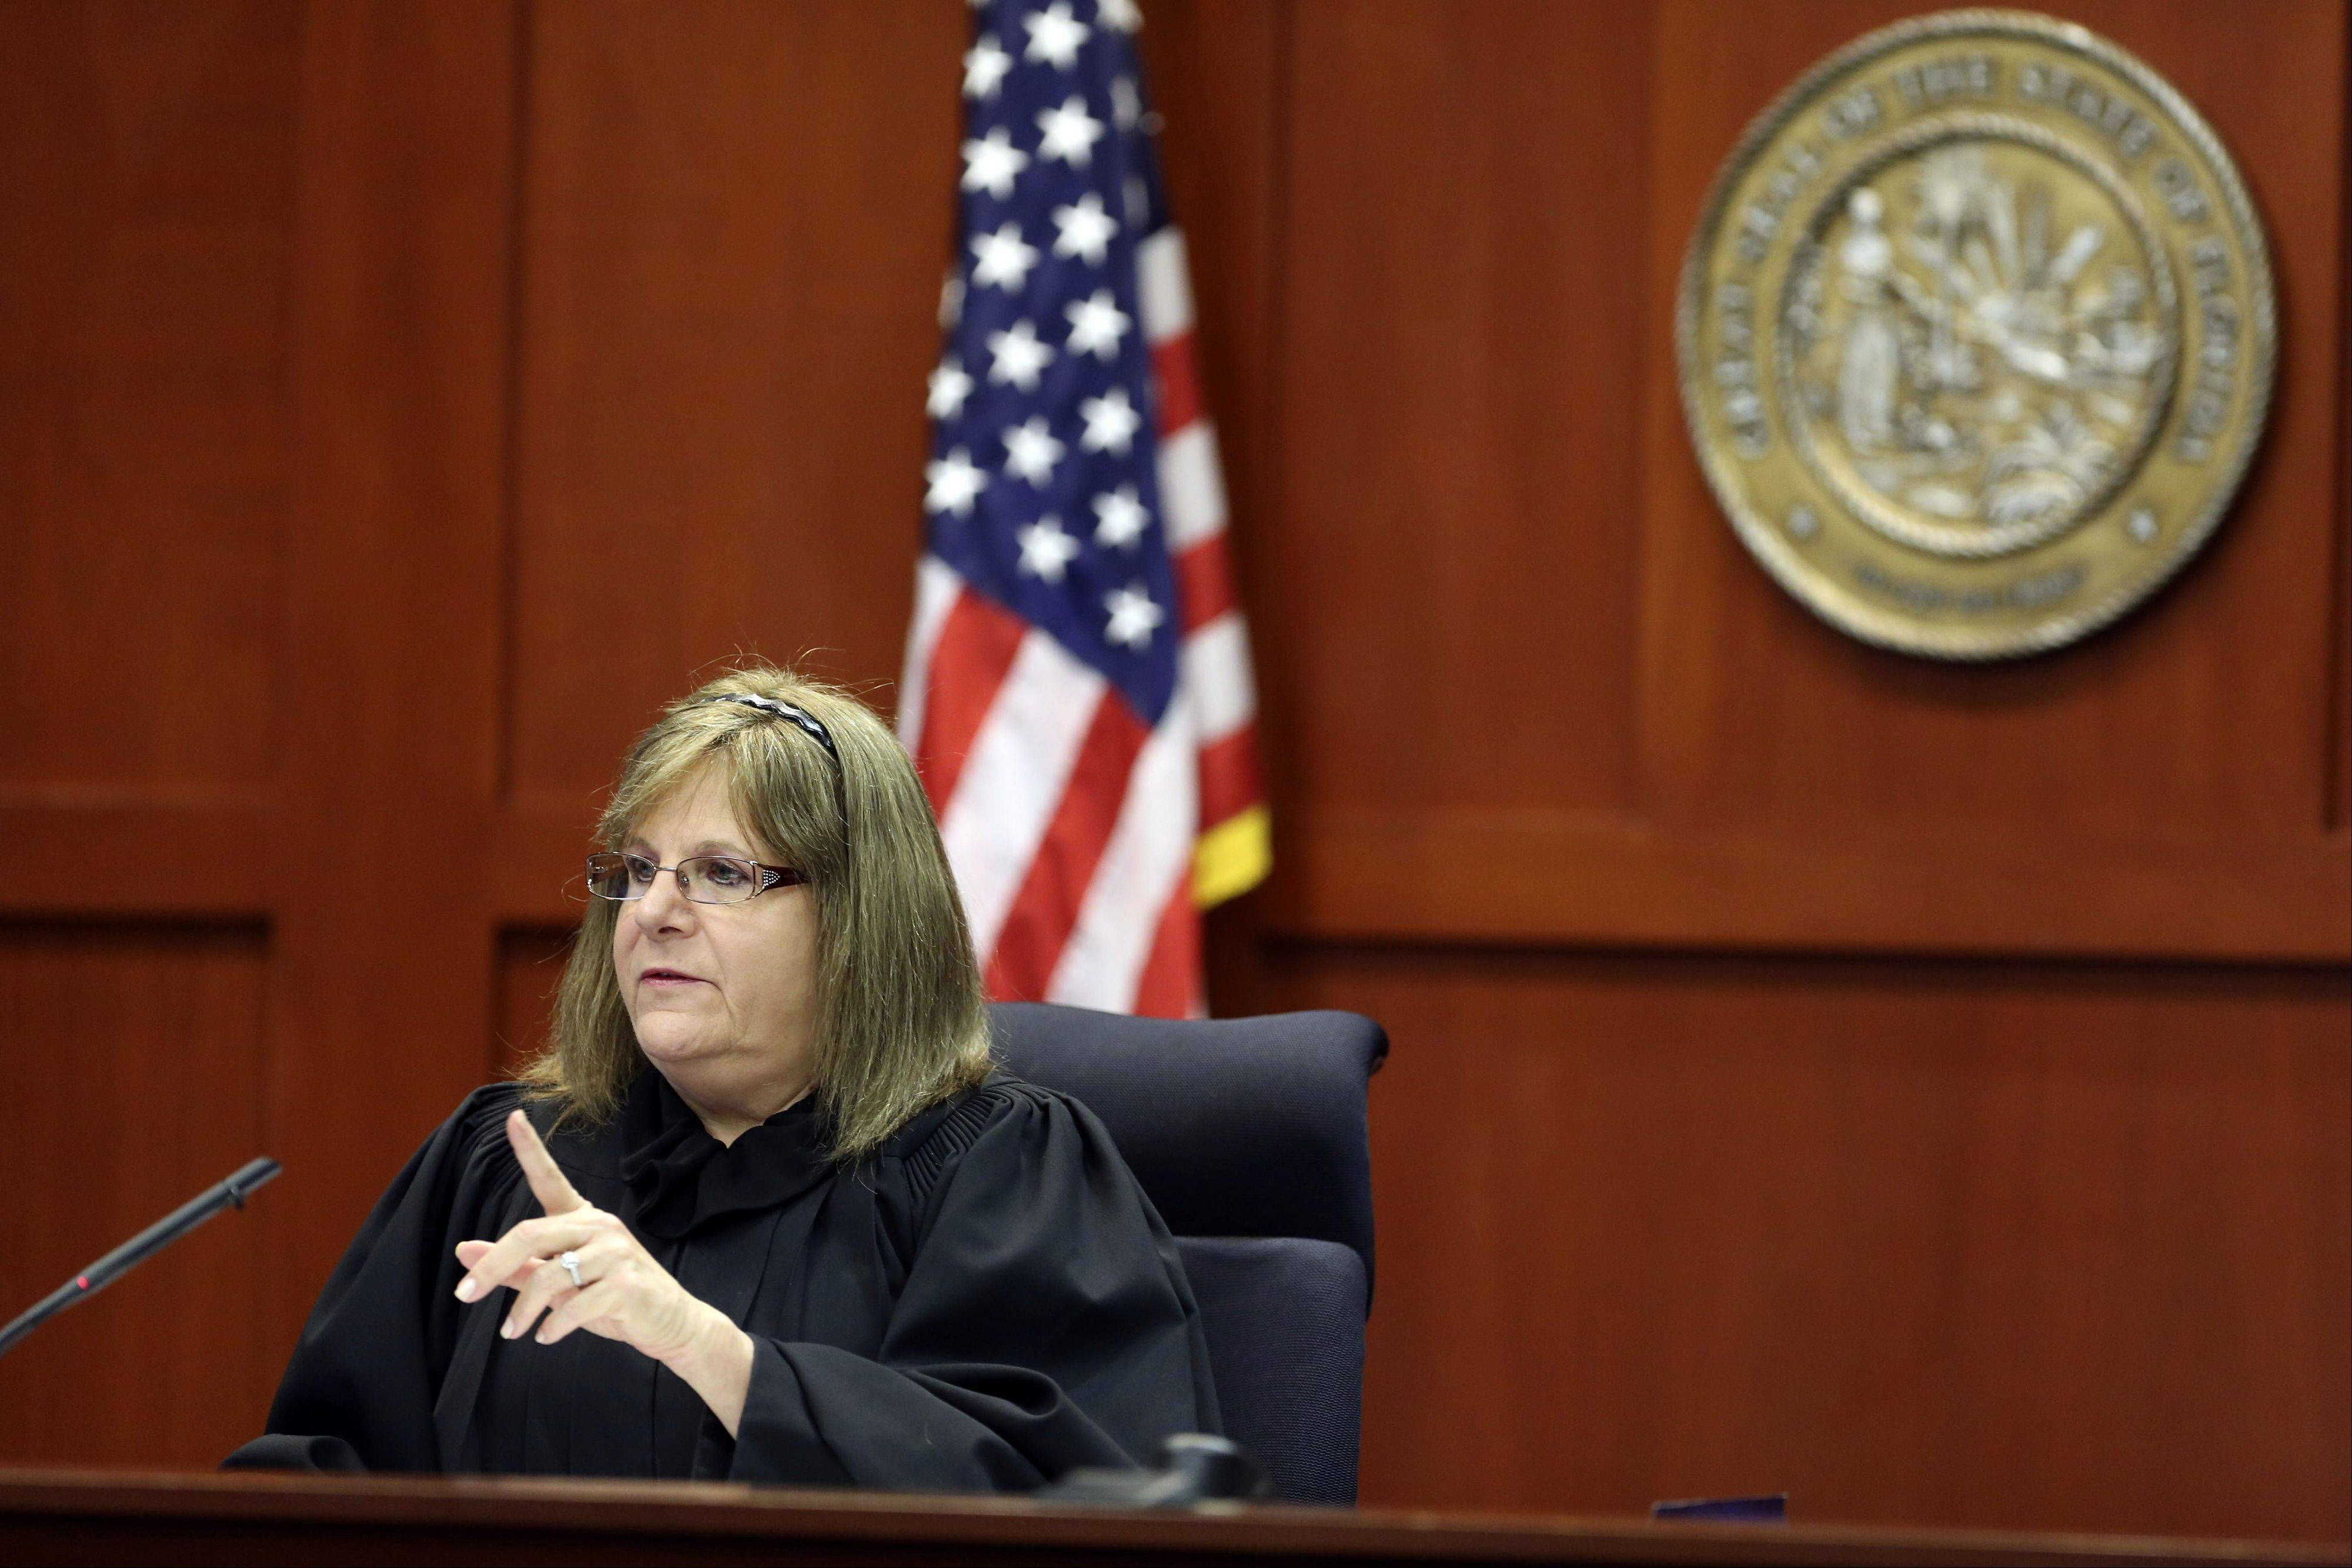 Judge Debra Nelson gives instructions to attorneys during George Zimmerman�s trial in Seminole circuit court in Sanford, Fla. Thursday. Zimmerman has been charged with second-degree murder for the 2012 shooting death of Trayvon Martin.